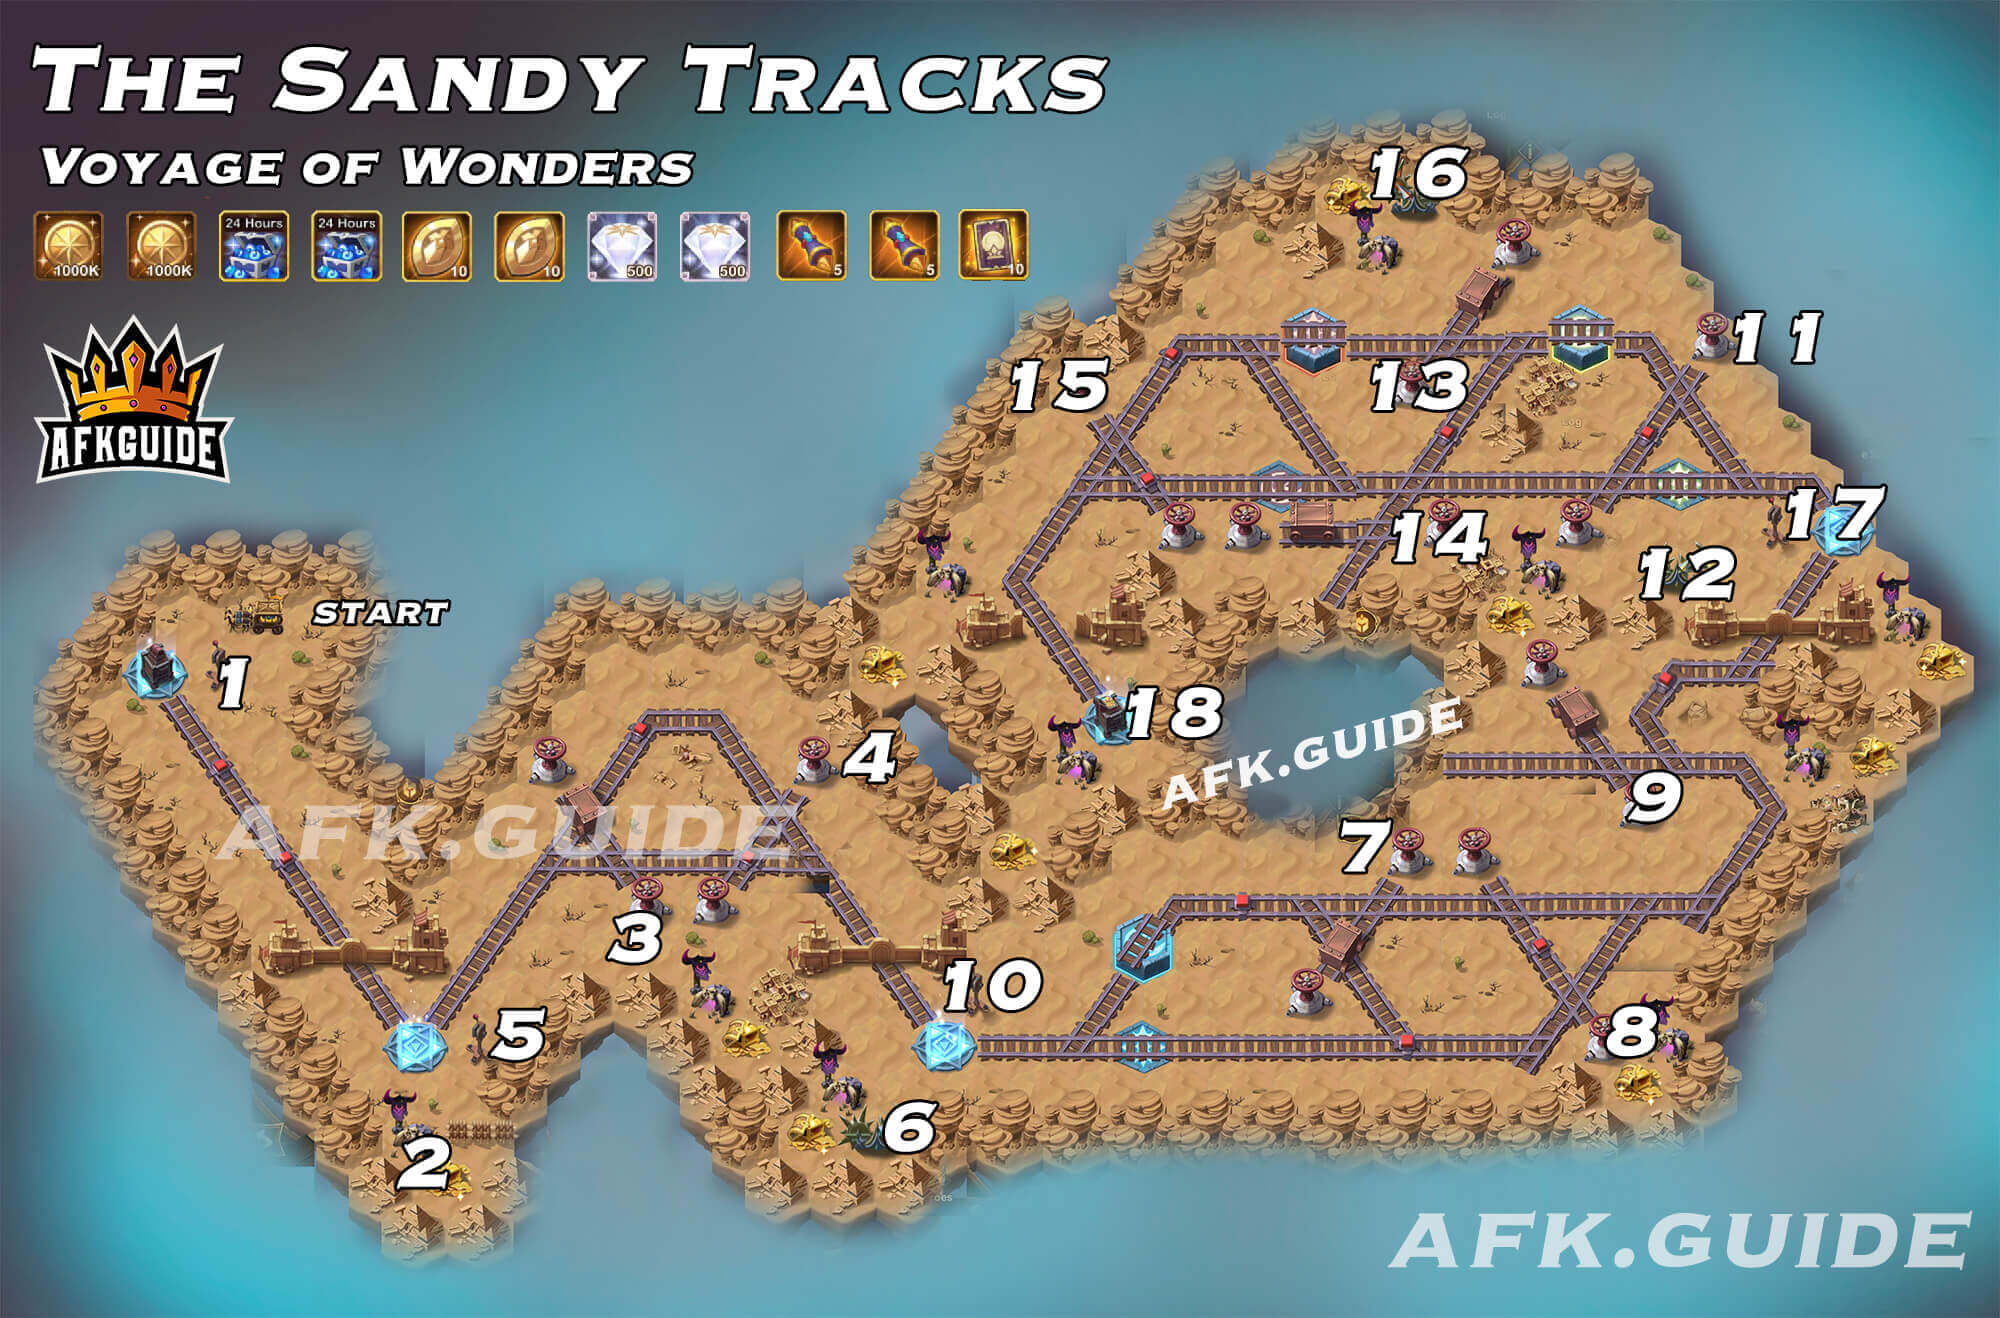 sandy tracks voyage of wonders afk arena